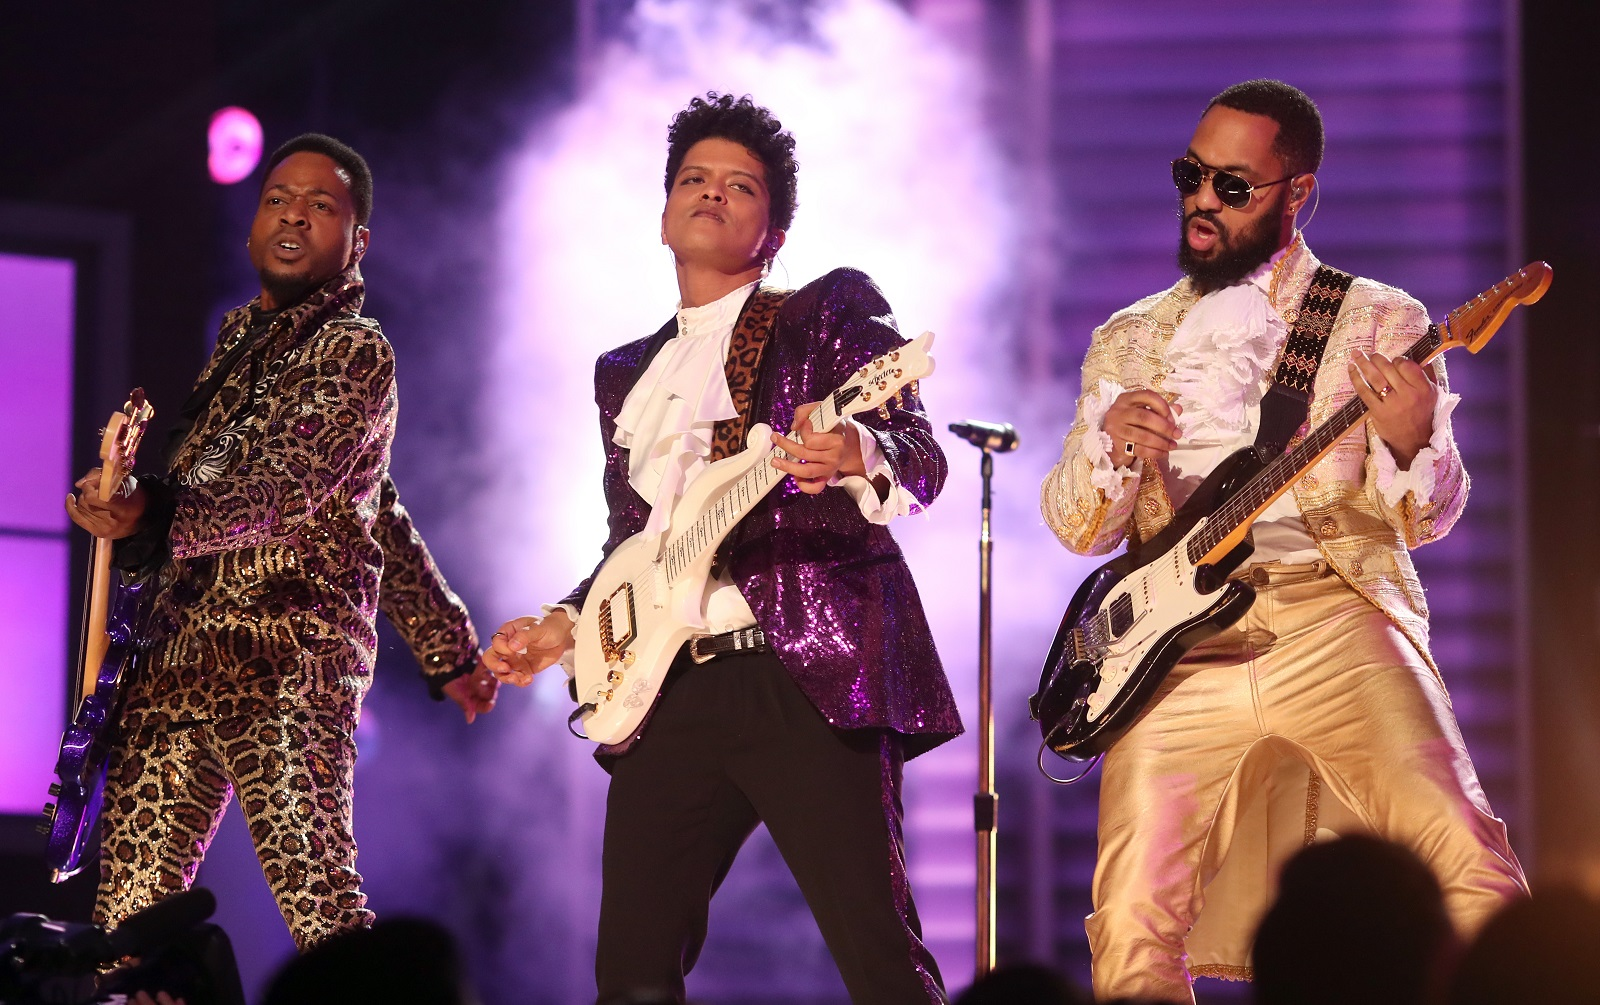 Bruno Mars, middle, performs during the 59th Grammy Awards. (Getty Images)